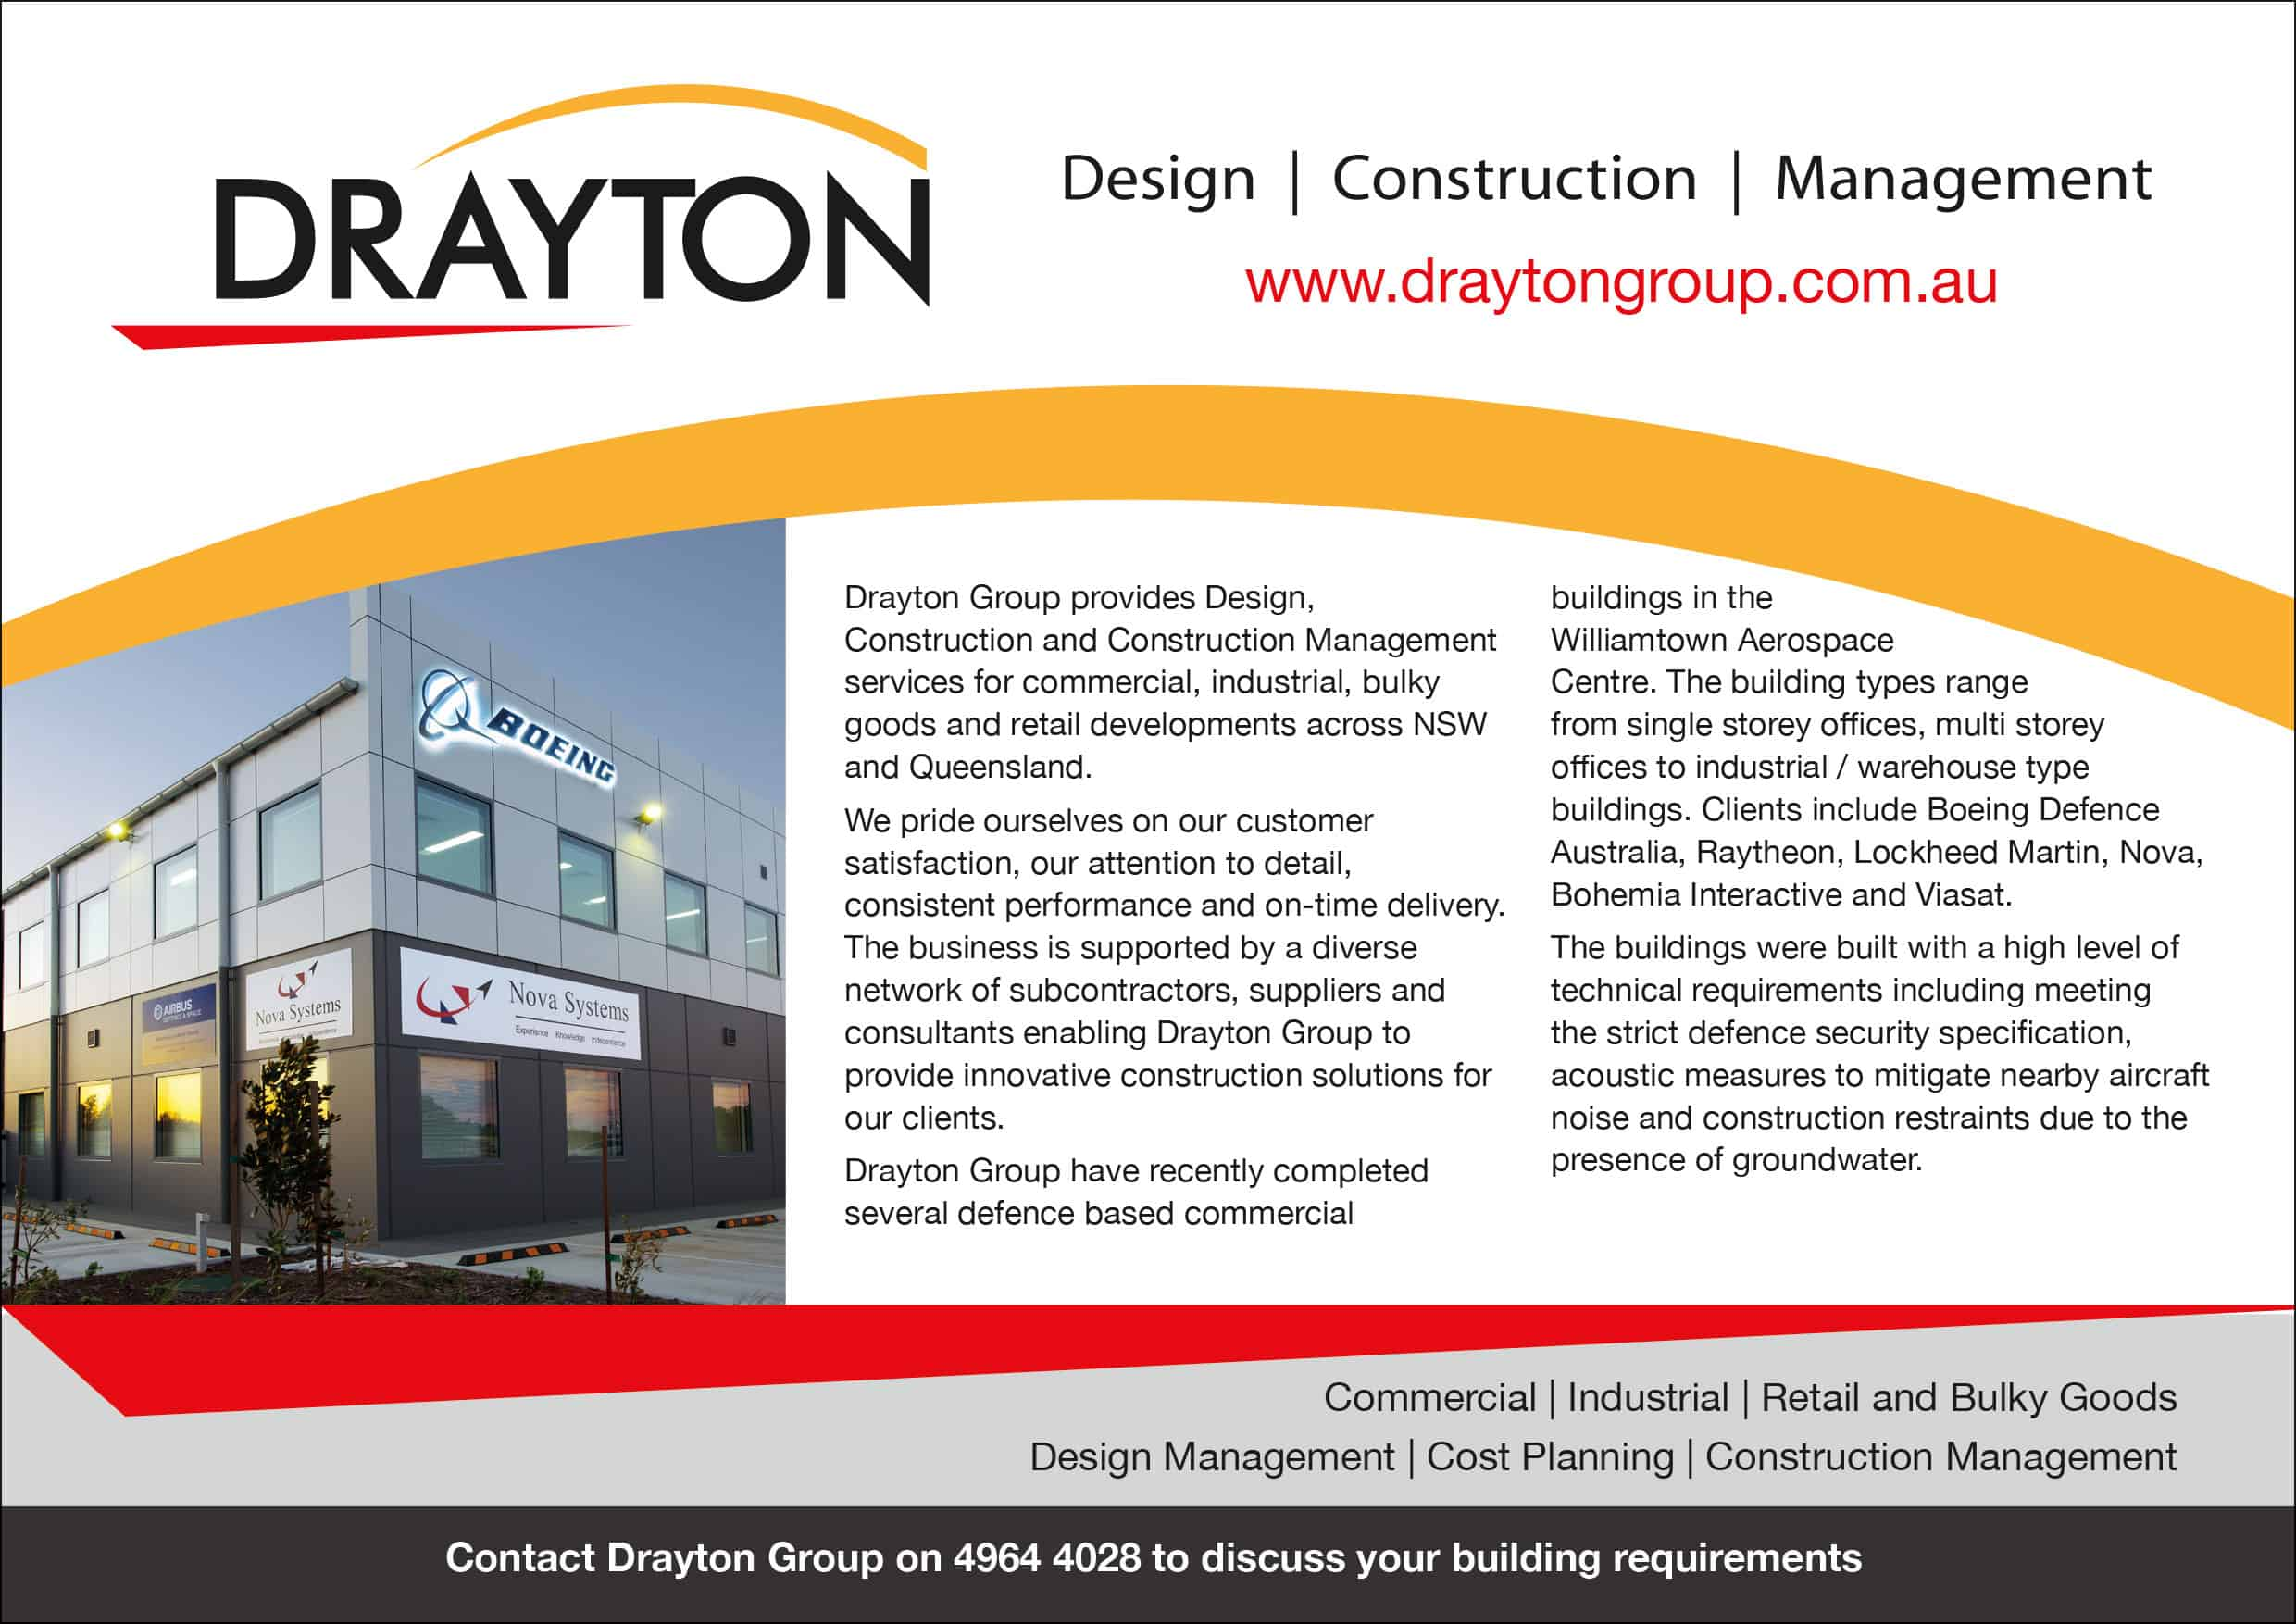 Drayton Group - Design, Construction, Management